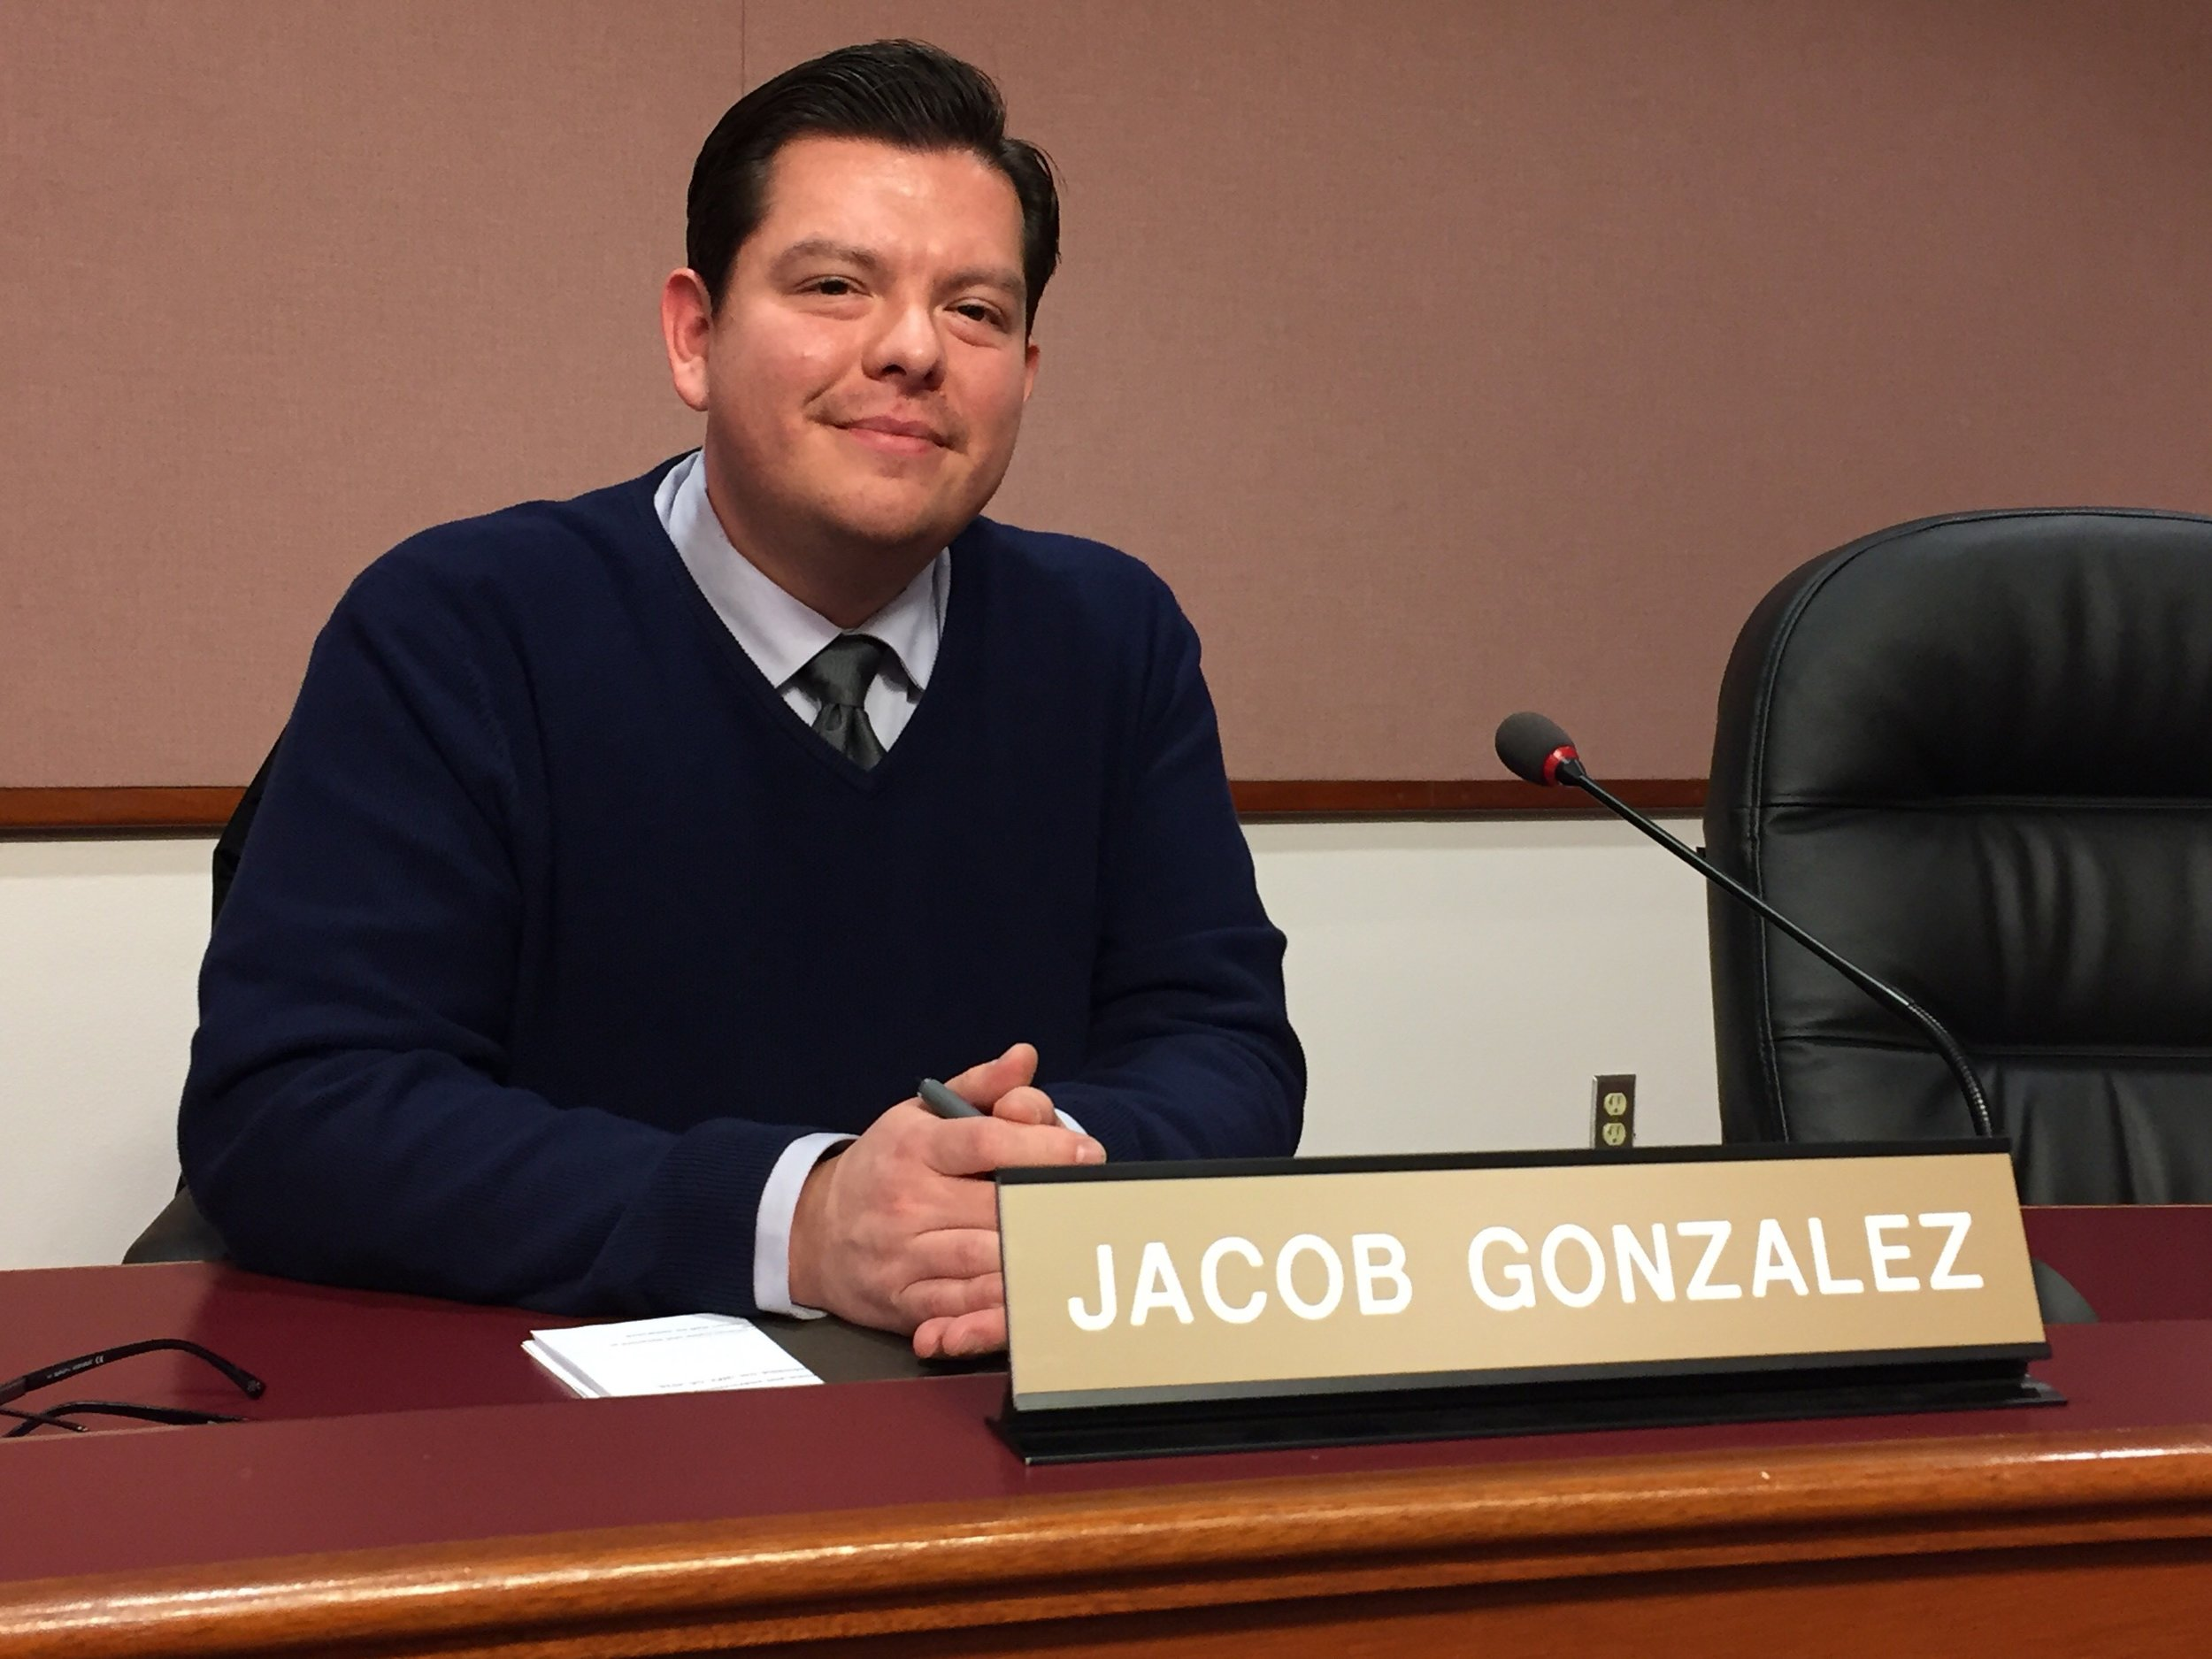 Jacob Gonzalez at a recent planning commission meeting.   Puget Sound Discovery, Class of 2018